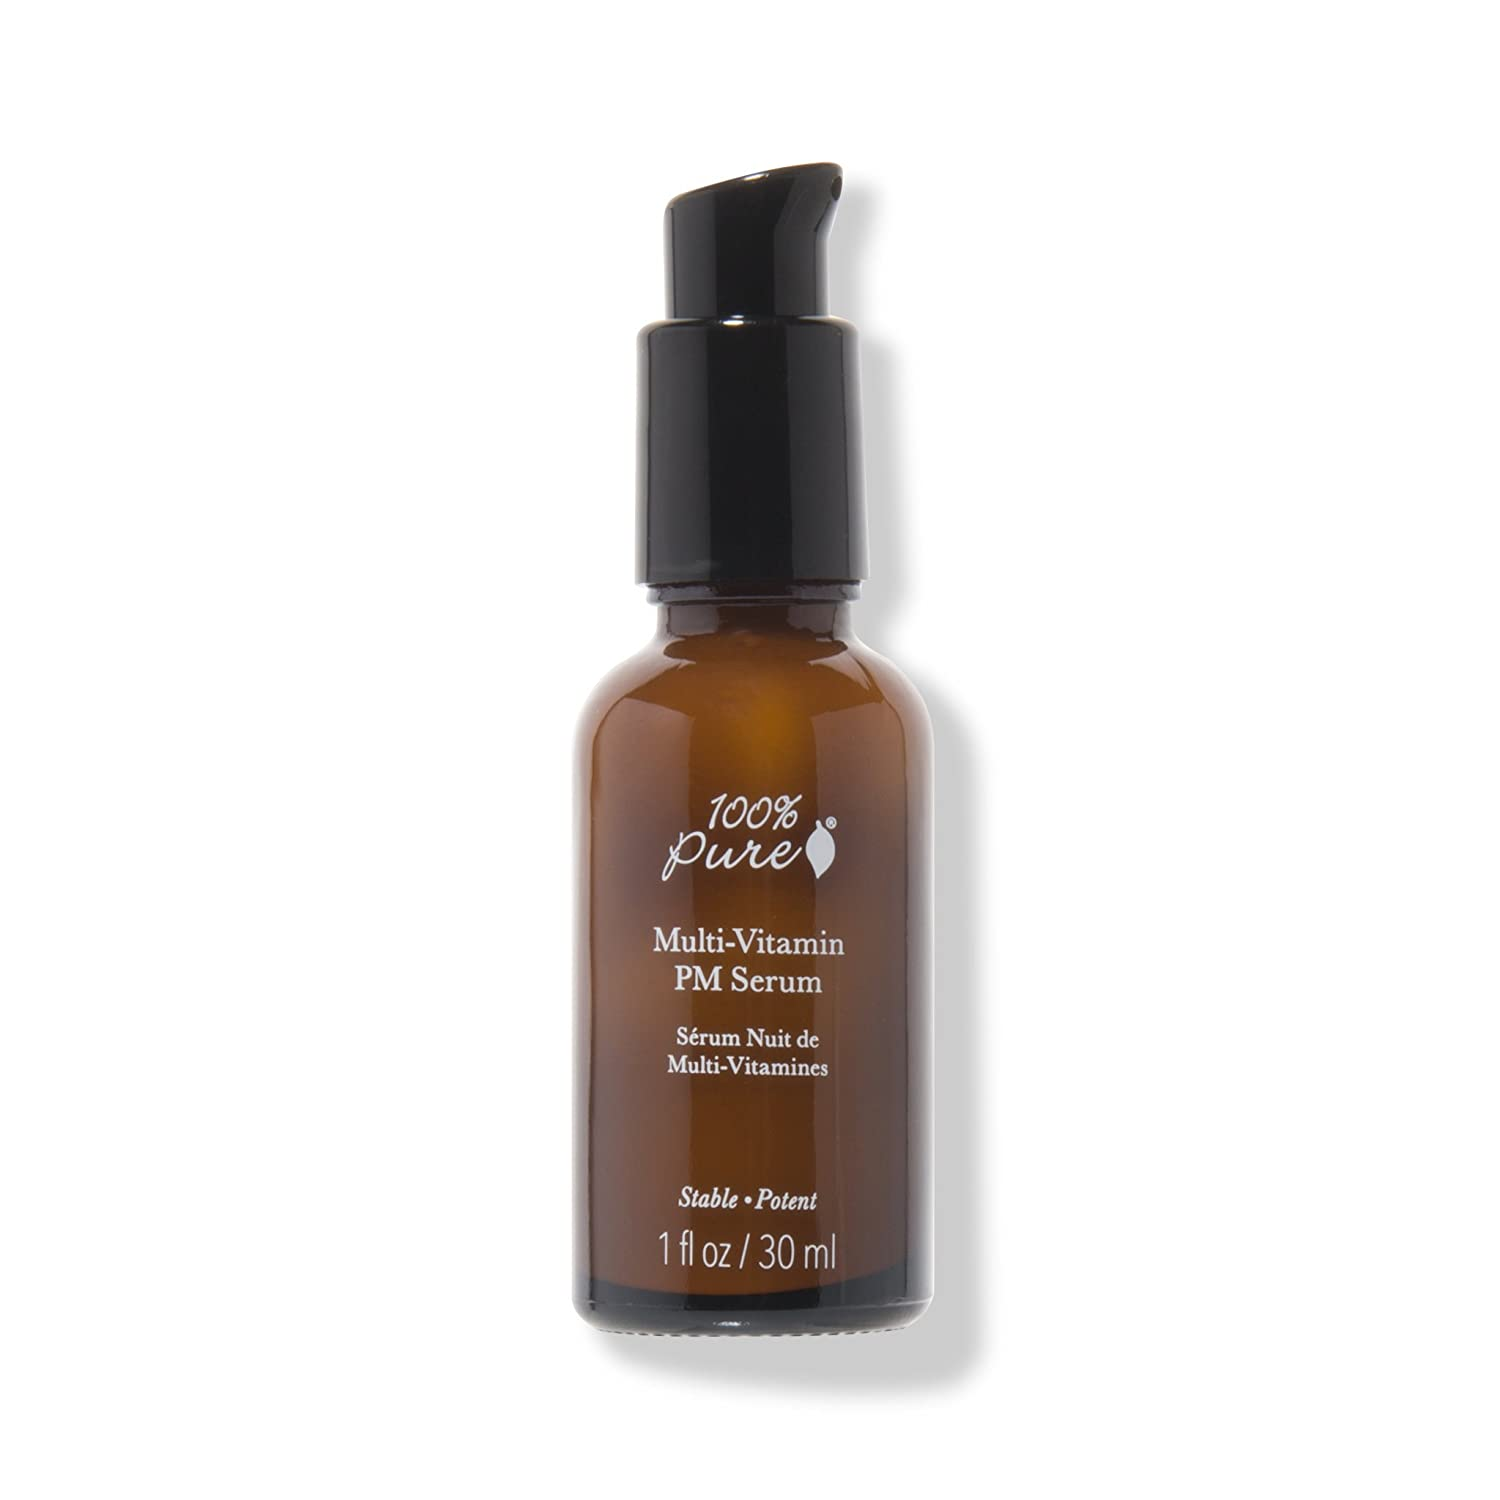 100% Pure Multi-Vitamin + Antioxidants Potent PM Serum, Prevents Lines and Wrinkles, Firms Skin, Boosts Collagen and Brightens